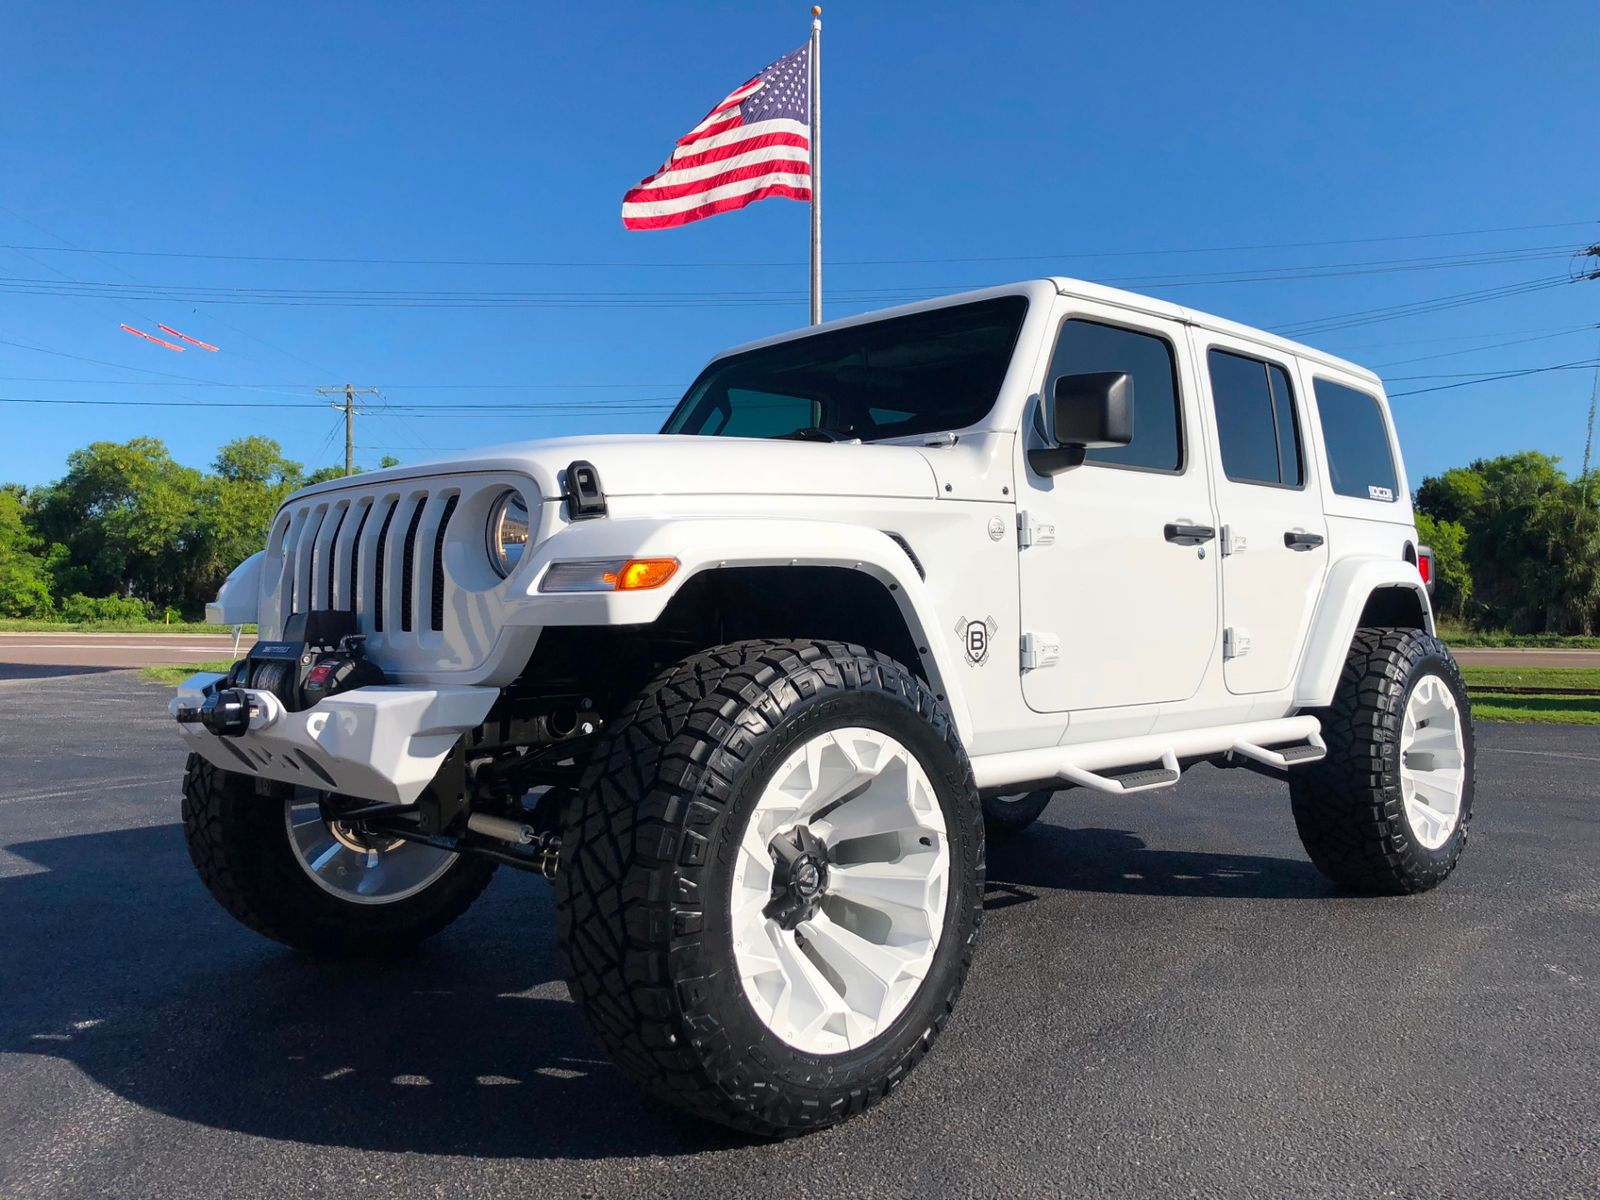 2018 jeep all new wrangler unlimited jl white out custom lifted leather hardtop florida bayshore. Black Bedroom Furniture Sets. Home Design Ideas